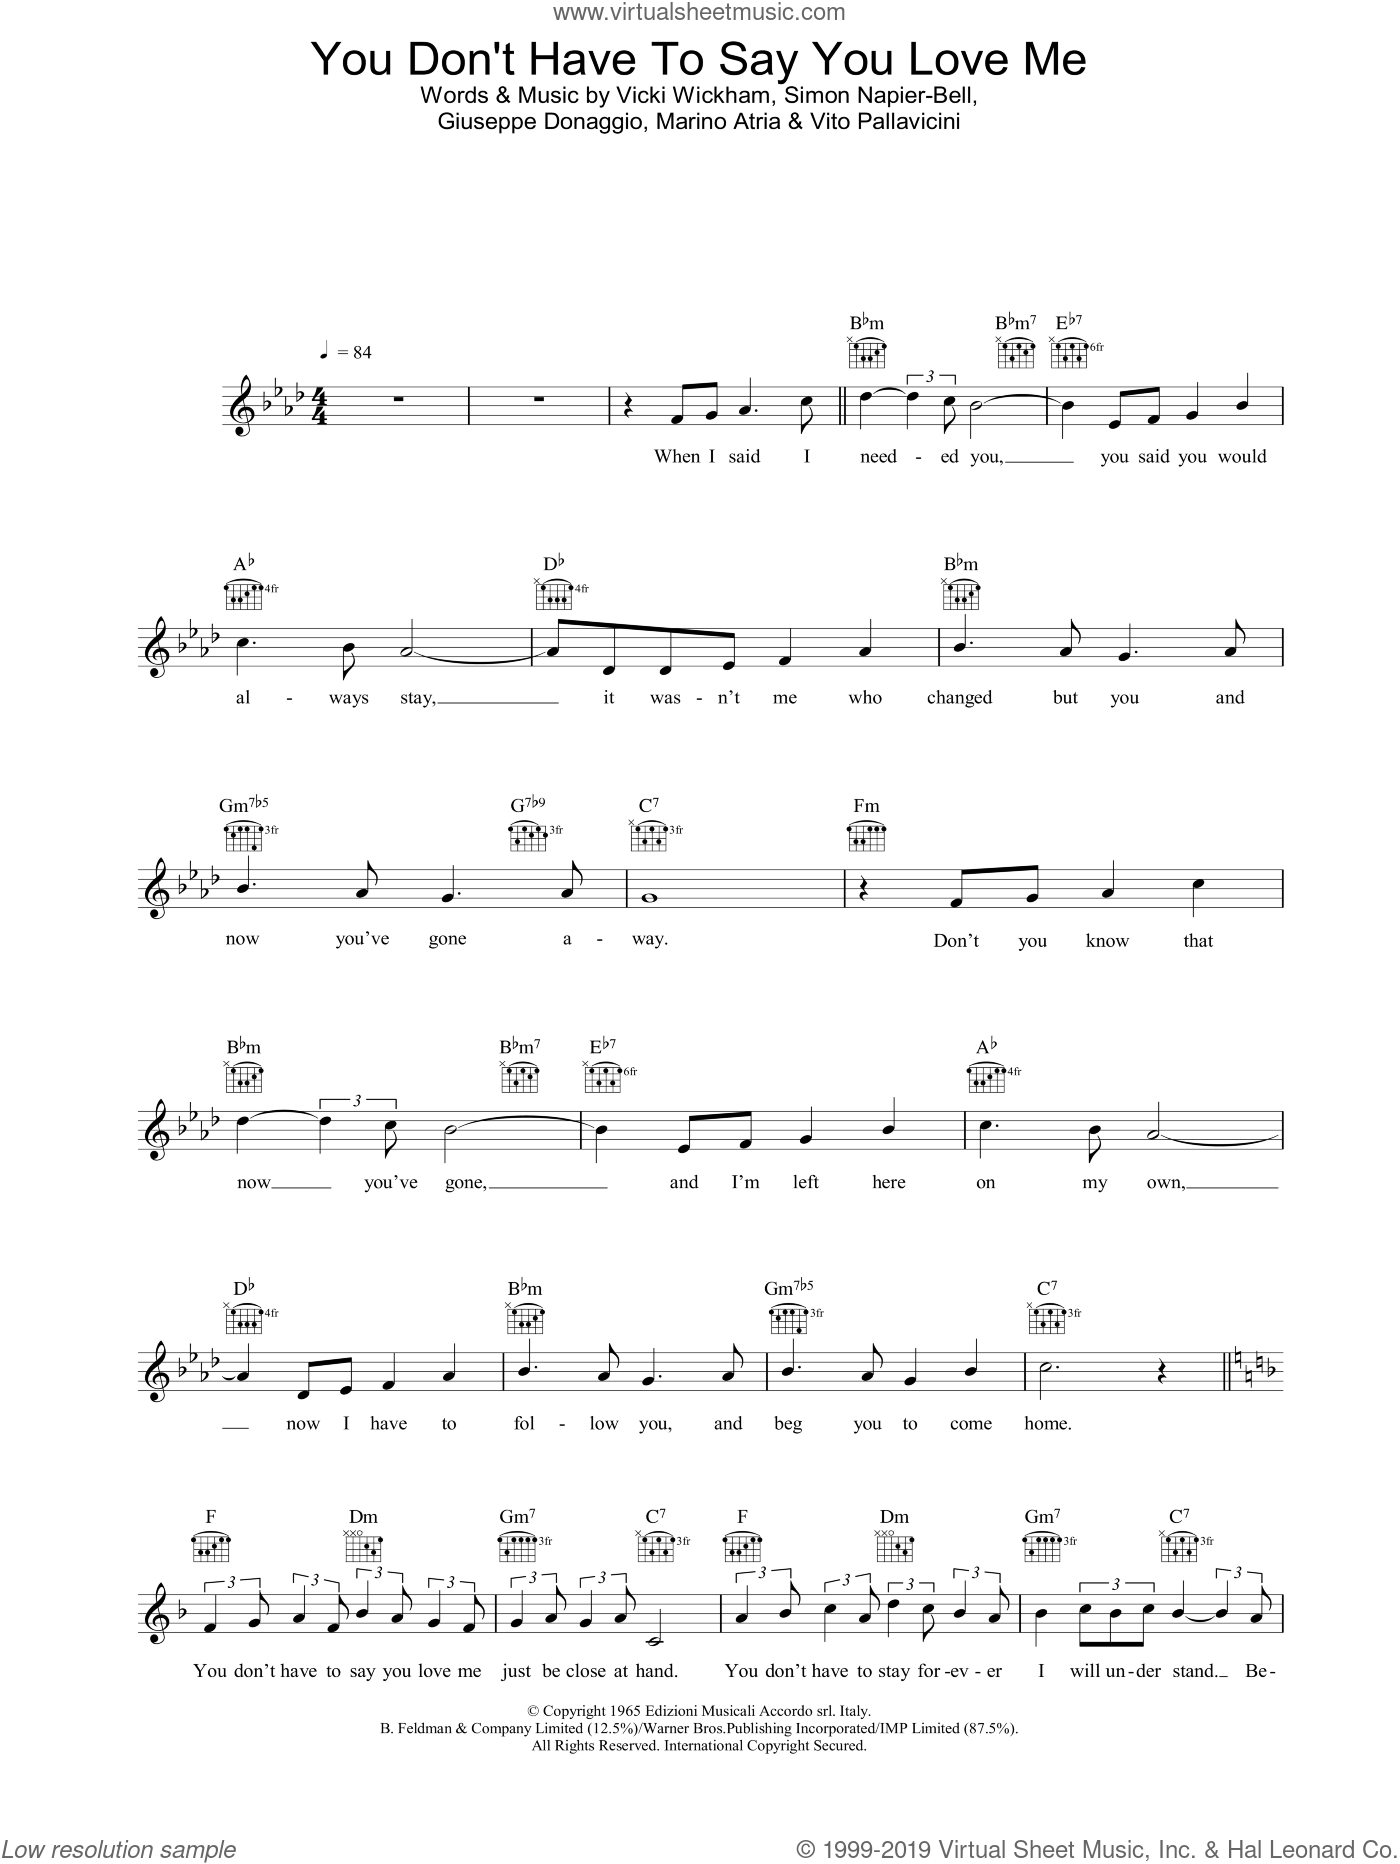 You Don't Have To Say You Love Me sheet music for voice and other instruments (fake book) by Vicki Wickham